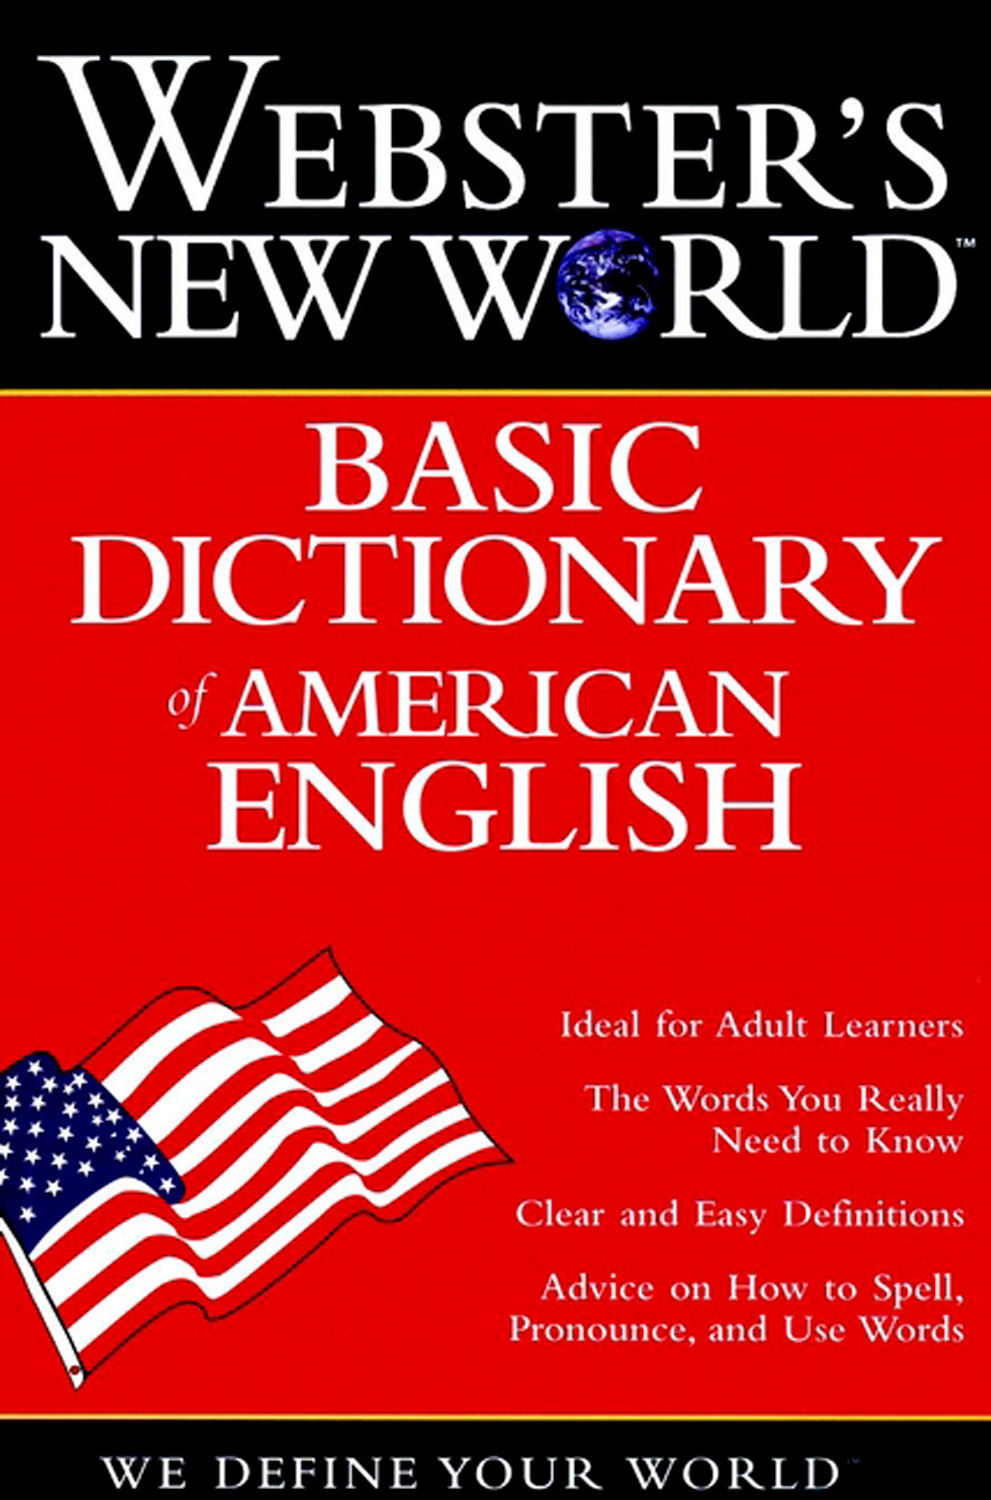 """a description of terrorism in the websters new american dictionary An american dictionary of the form that is the dictionary definition,"""" says dictionarycom webster's new world dictionary."""